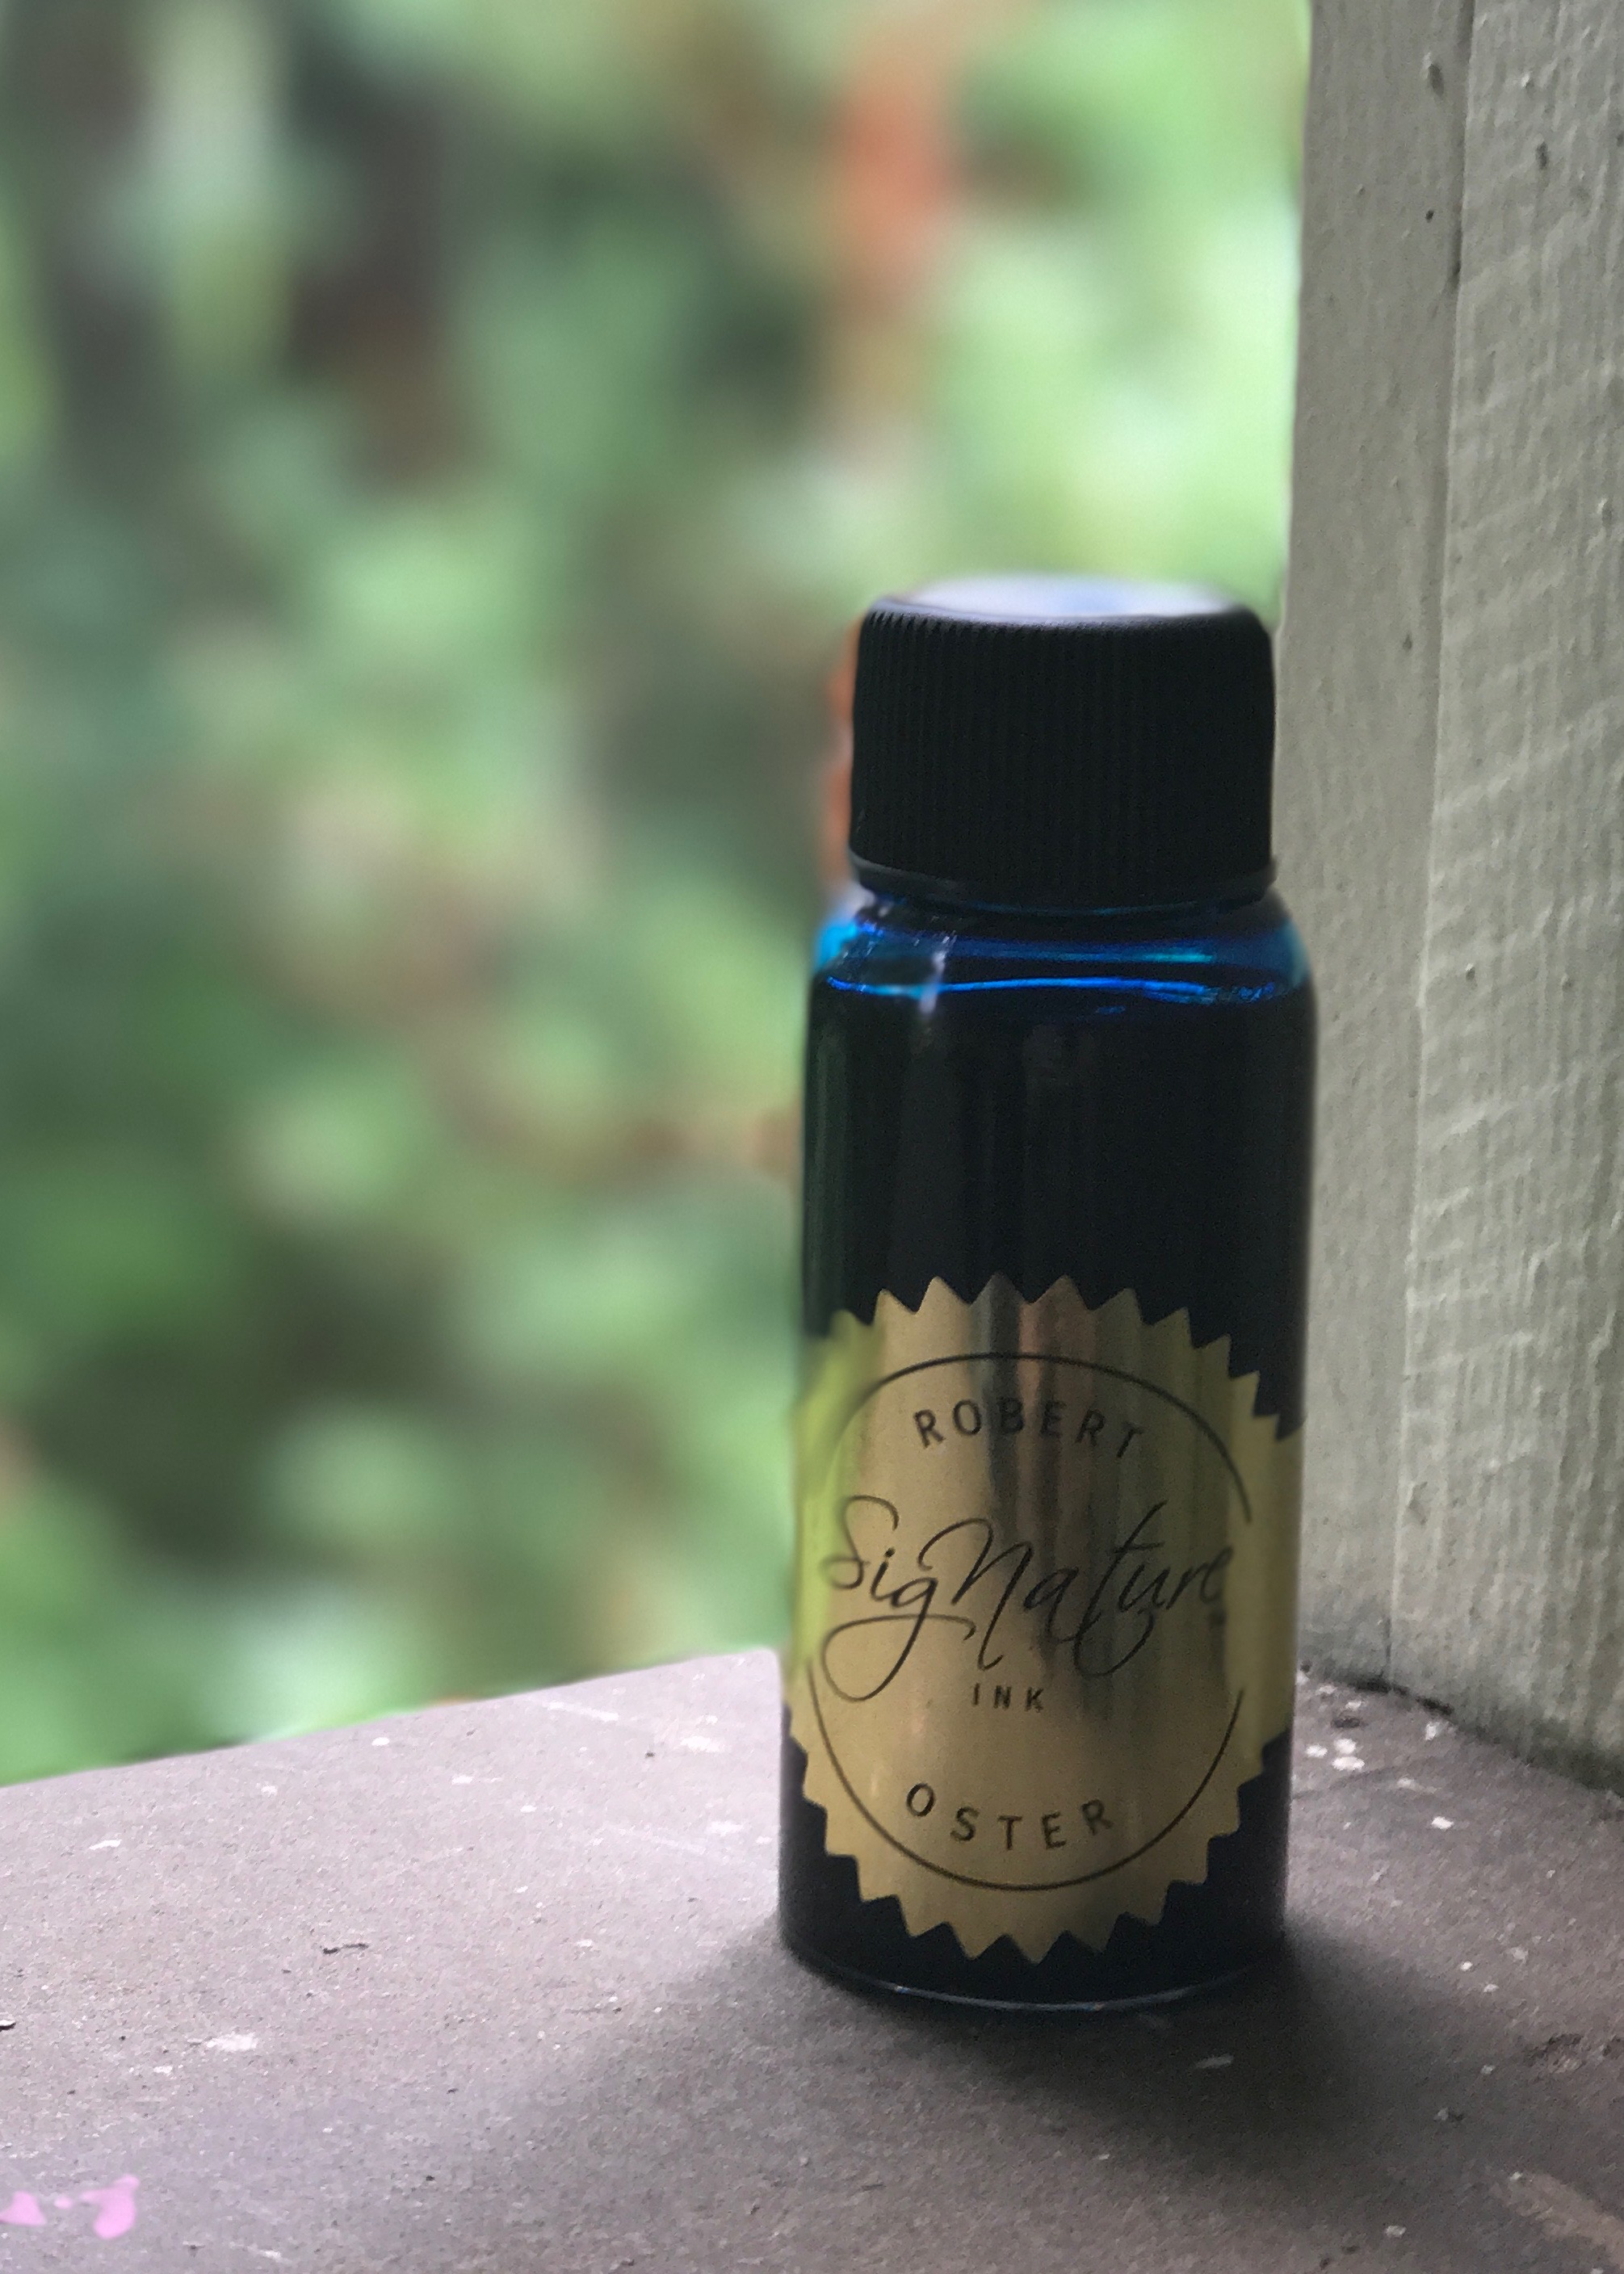 The bottle: - I've talked about this bottle before in other Robert Oster reviews, but I still like the bottle. I appreciate that the bottle is tall and skinny, useful for filling fountain pens.